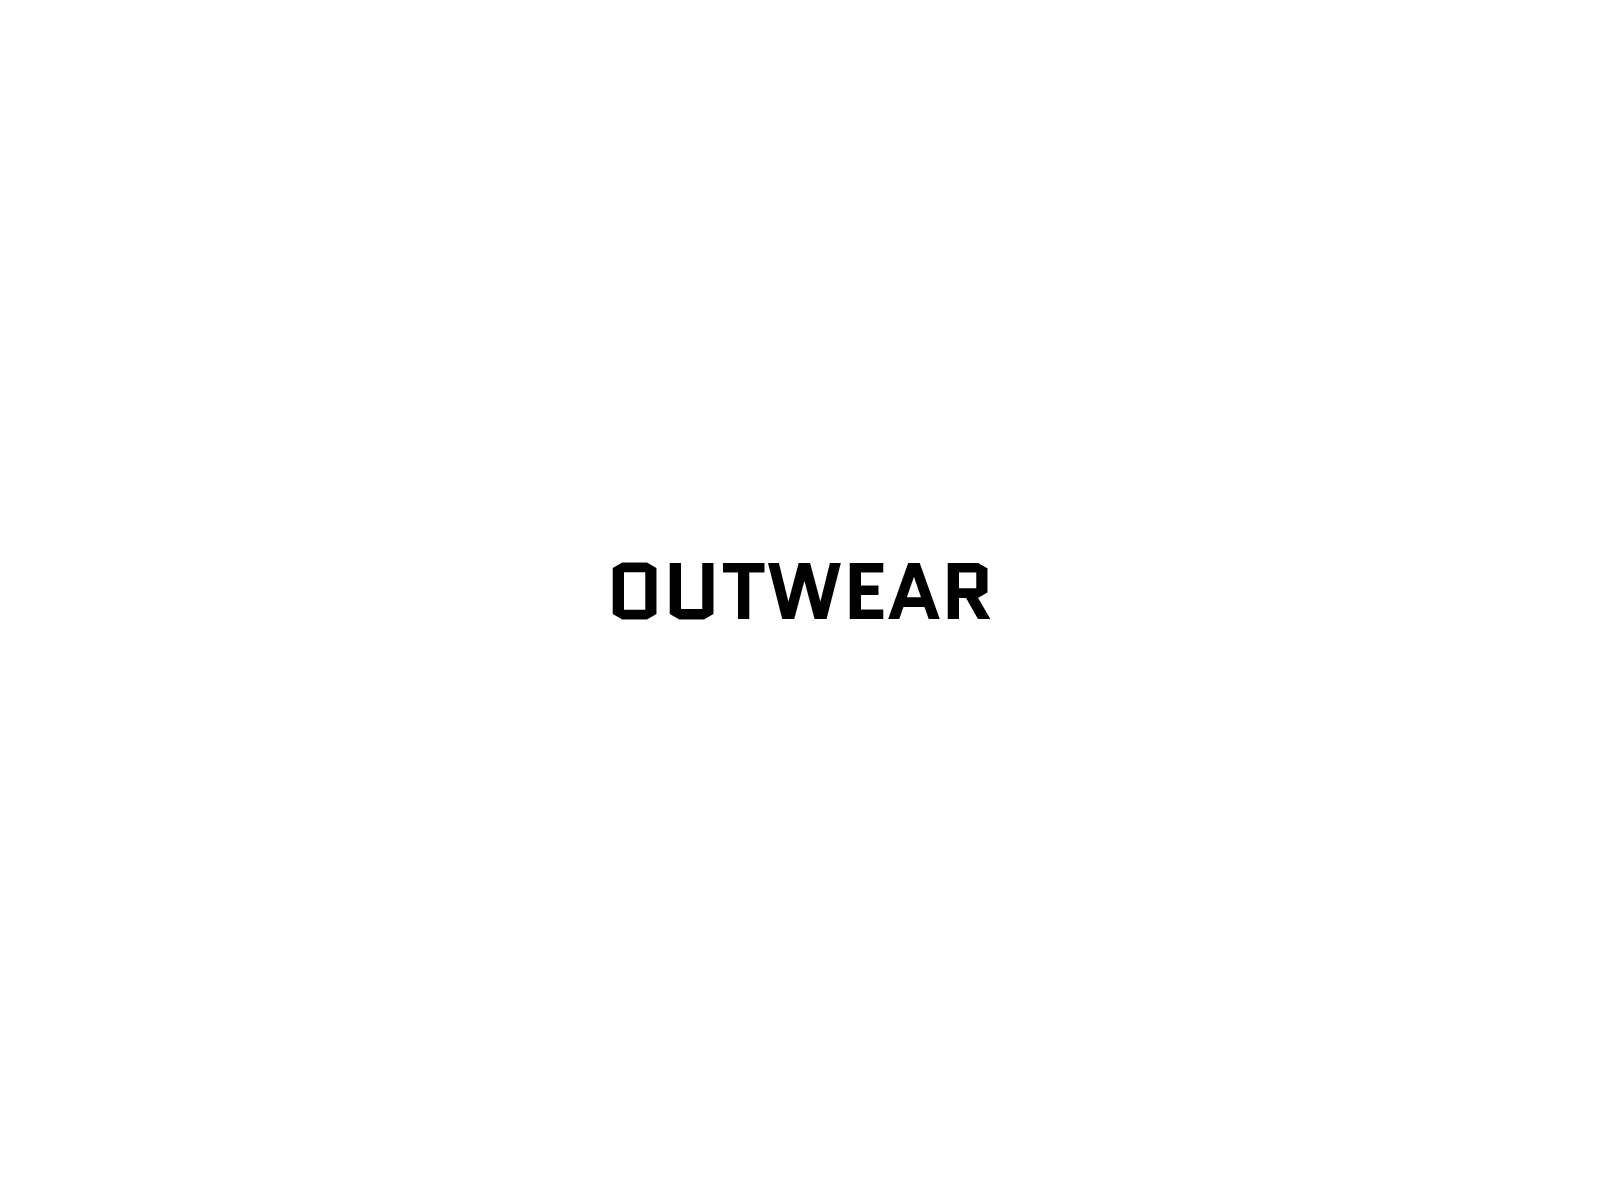 image of Outwear